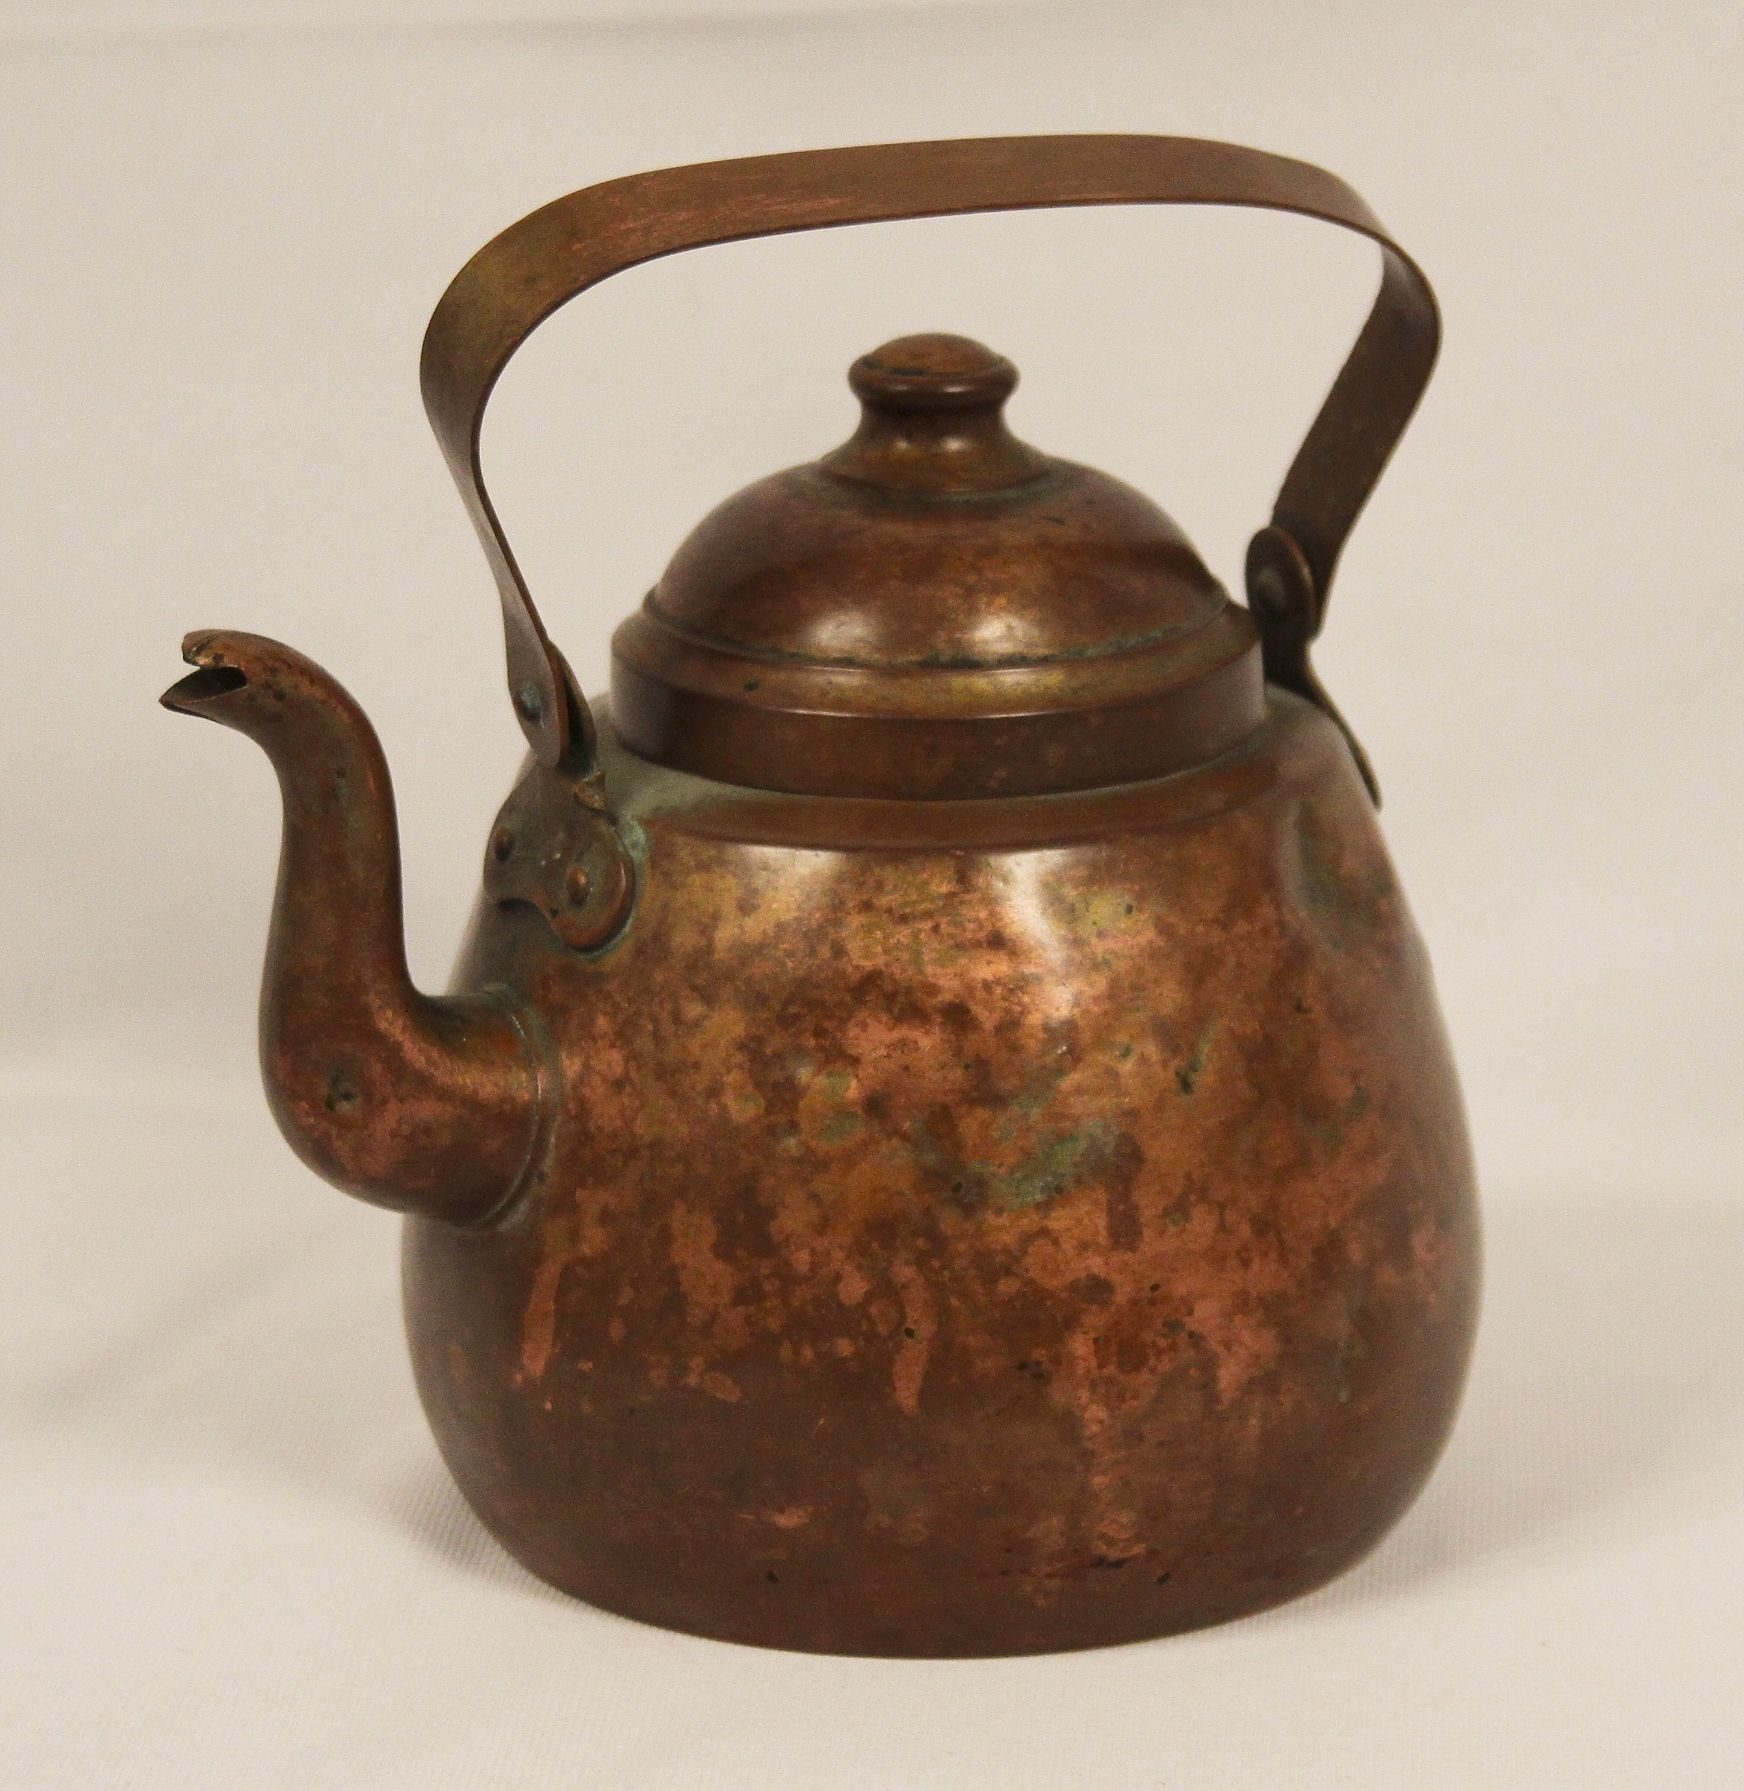 retro tea kettle copper tea pots vintage rothbergoy copper tea kettle 1949